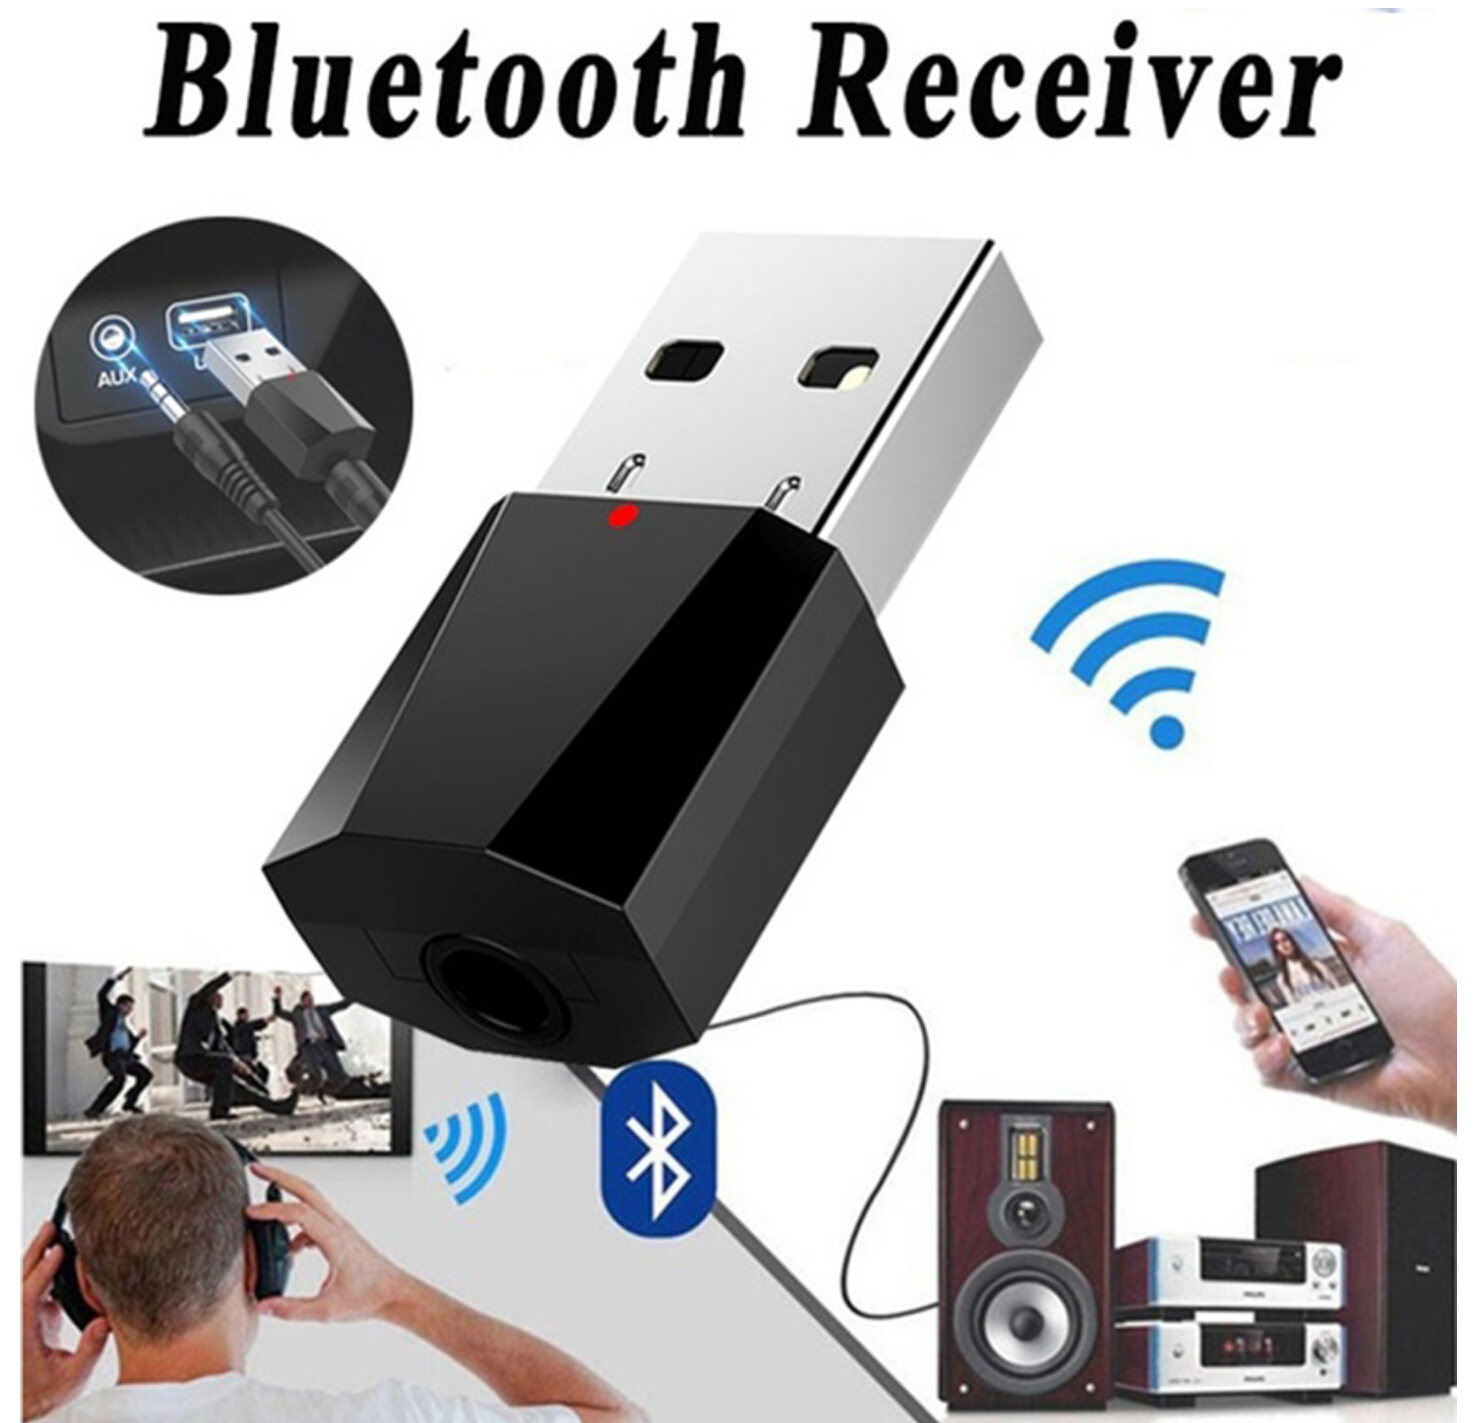 2019 new Wireless USB AUX Mini Bluetooth Receiver for lada granta kalina vesta priora largus 2110 niva 2107 2106 2109 vaz samara-in Car Tax Disc Holders from Automobiles & Motorcycles